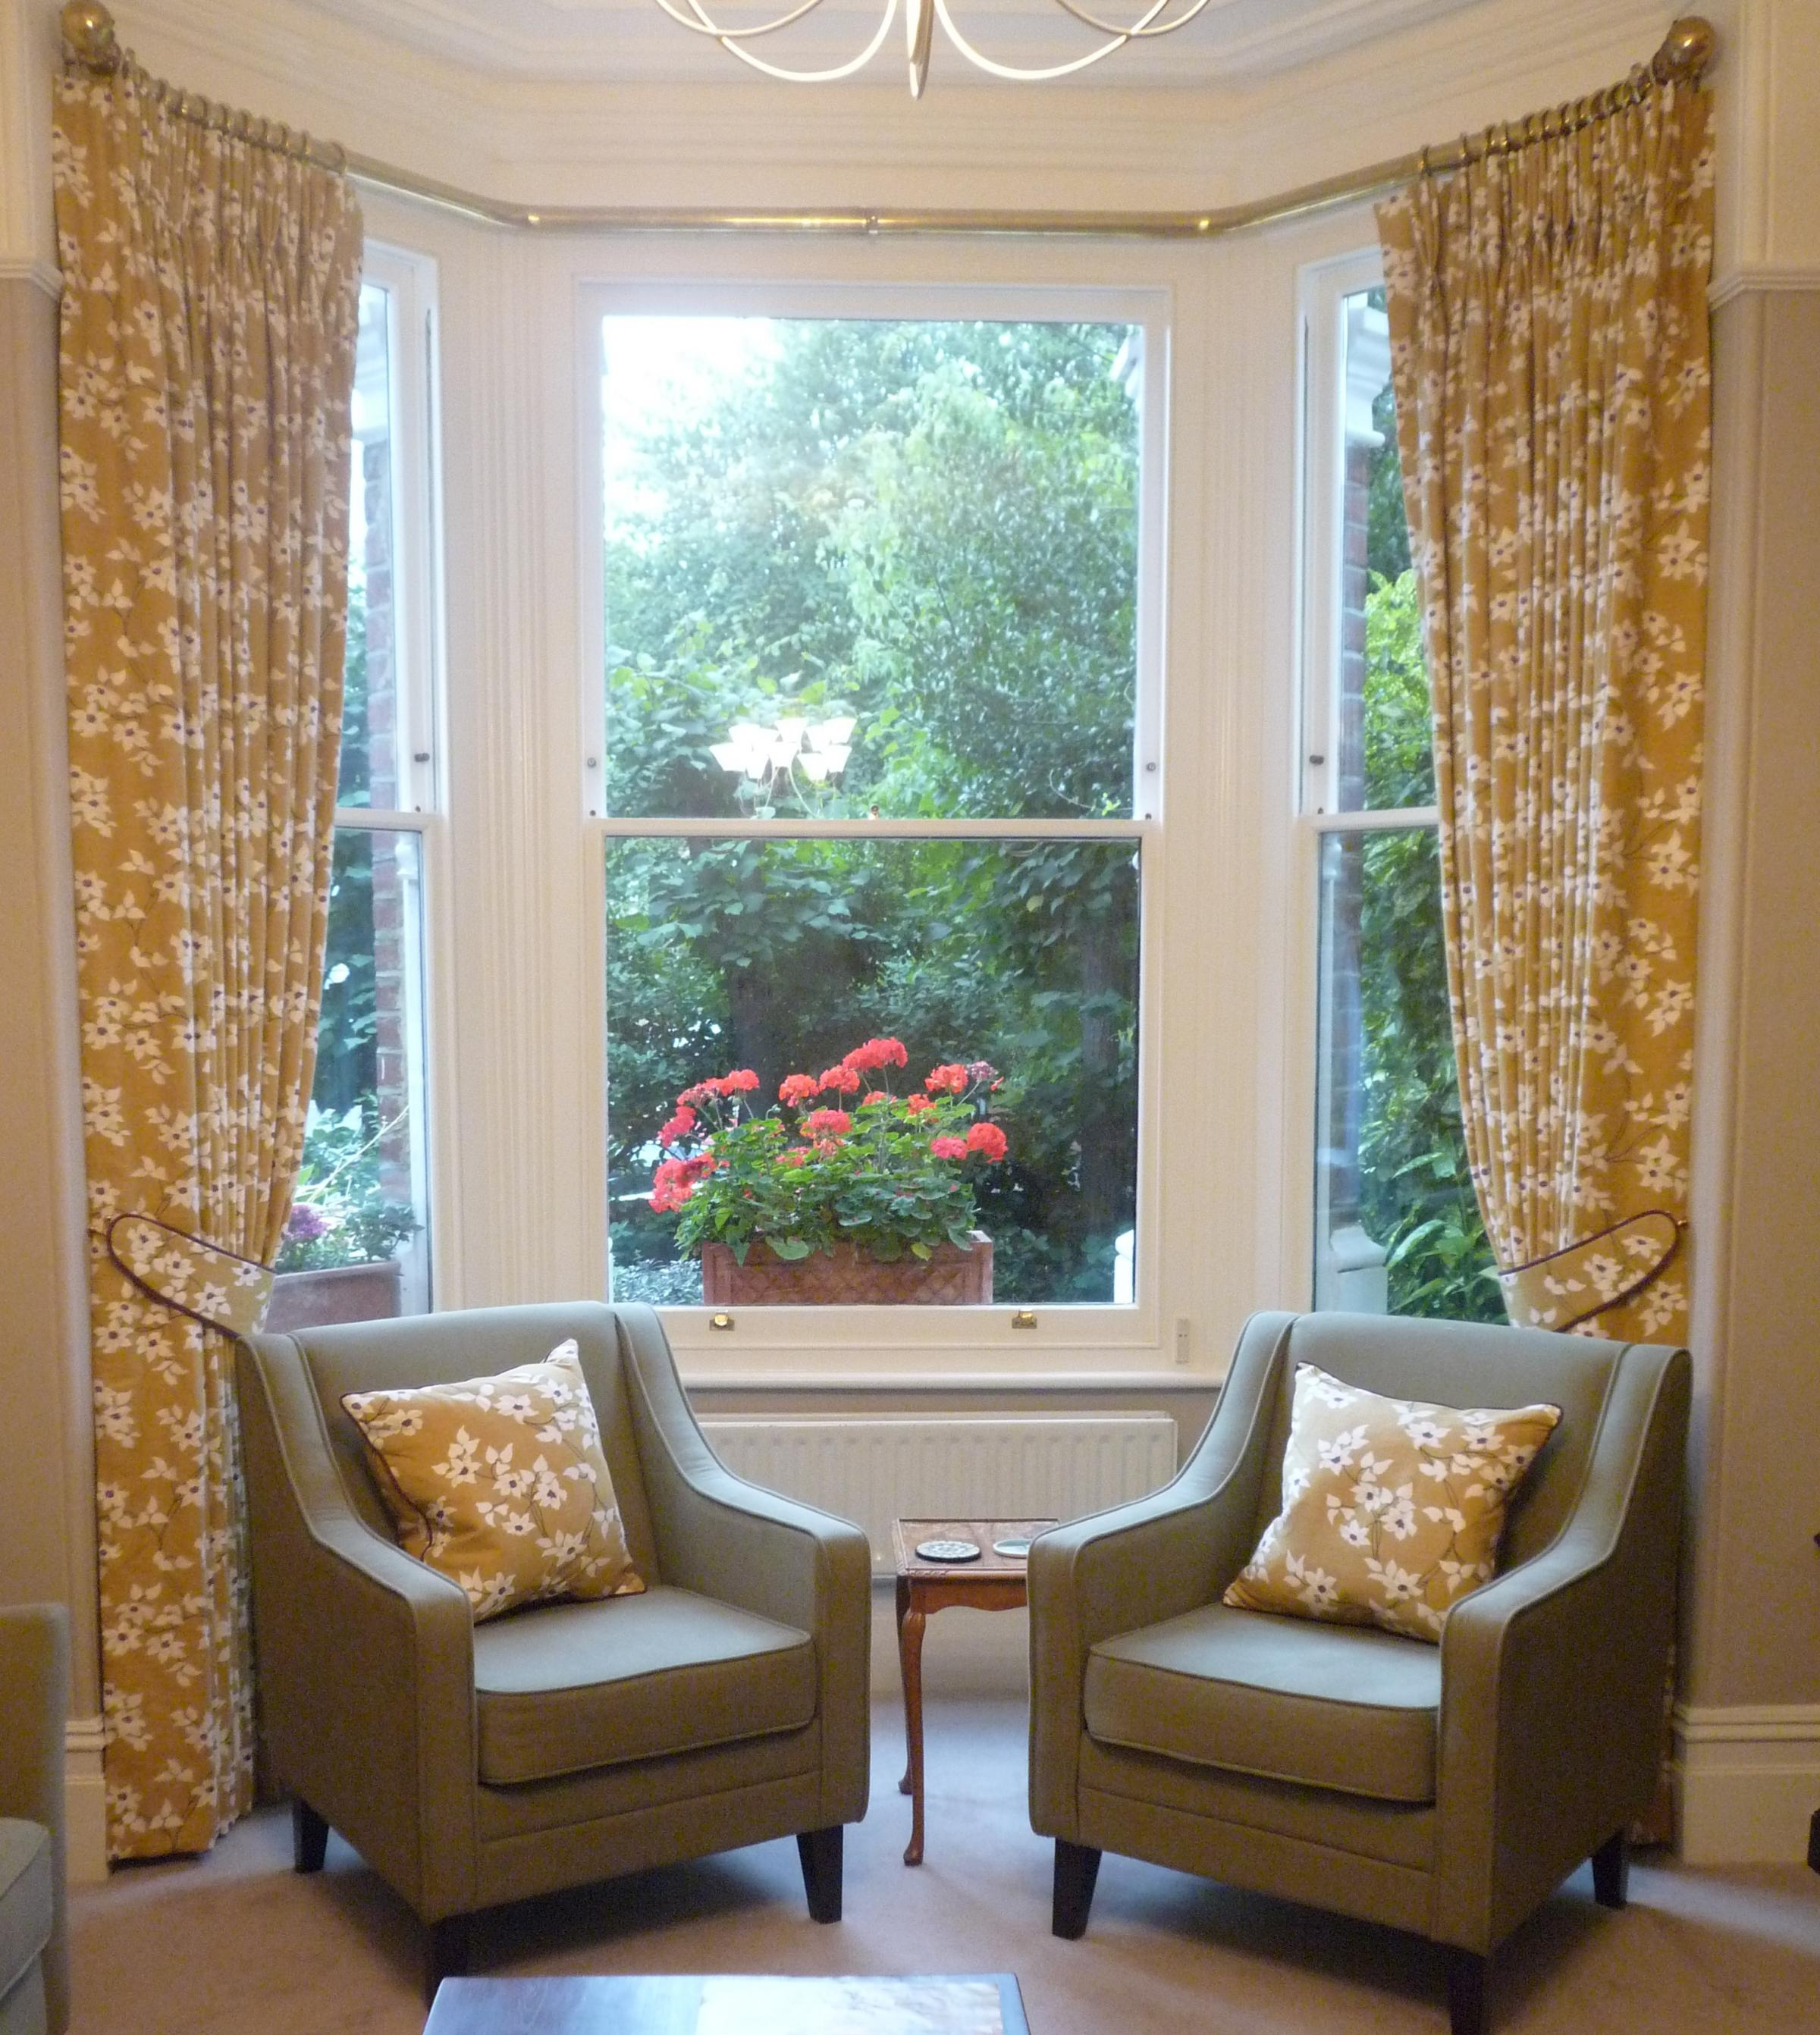 How to choose window coverings: Home decorating tips from Bromley interior designer